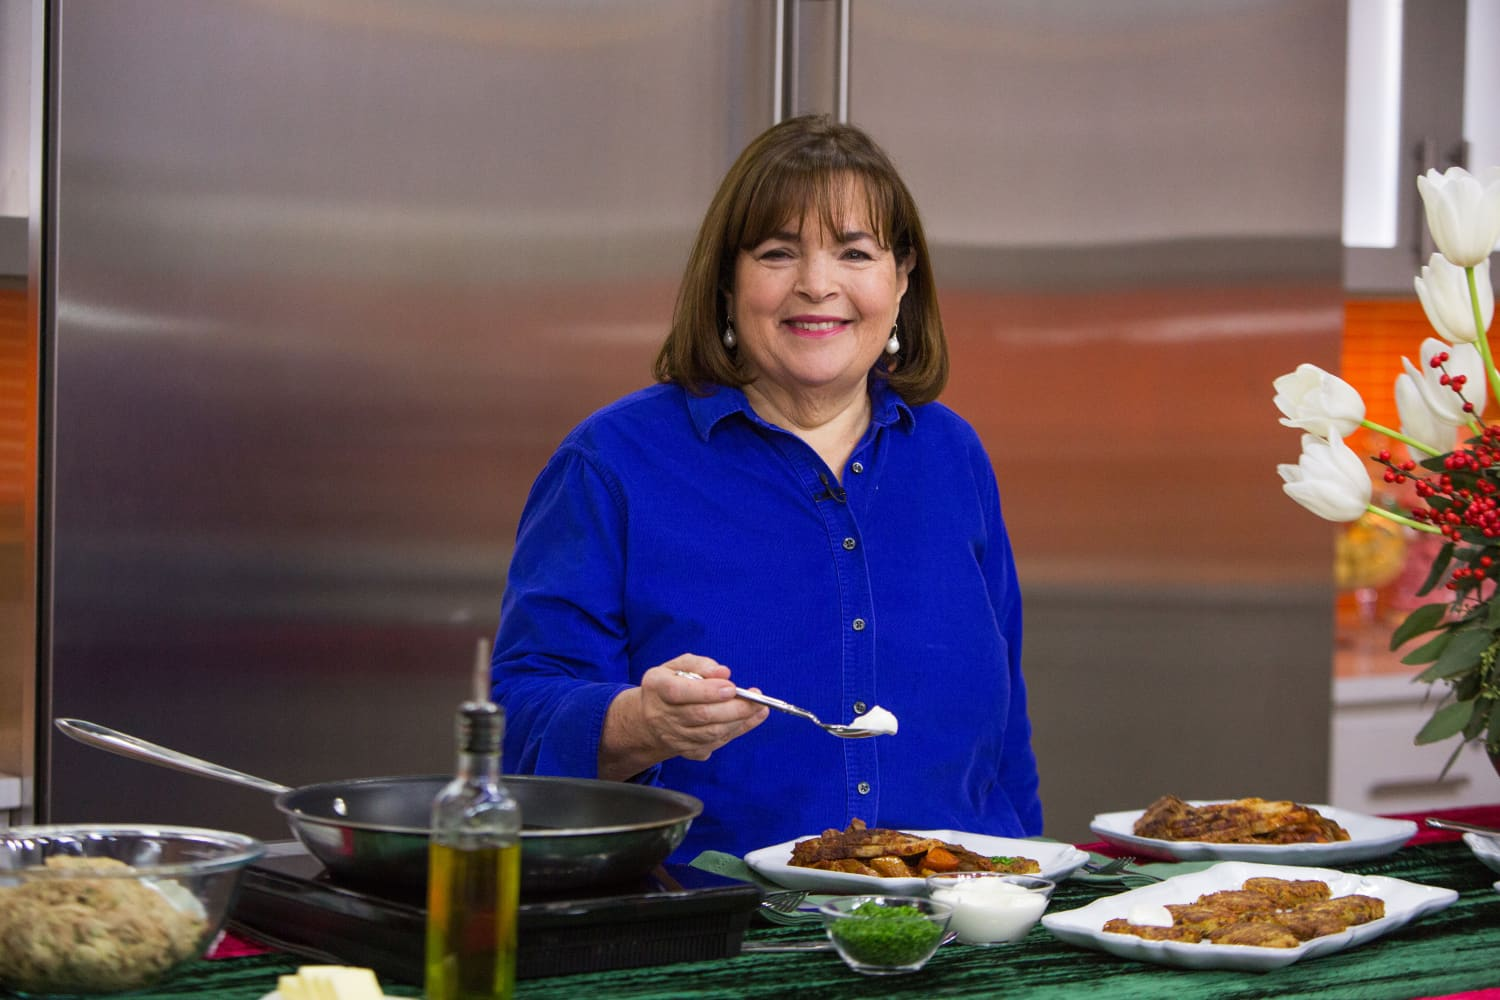 Ina Garten Says Vinaigrette Is One Thing You Should Always Know How to Make